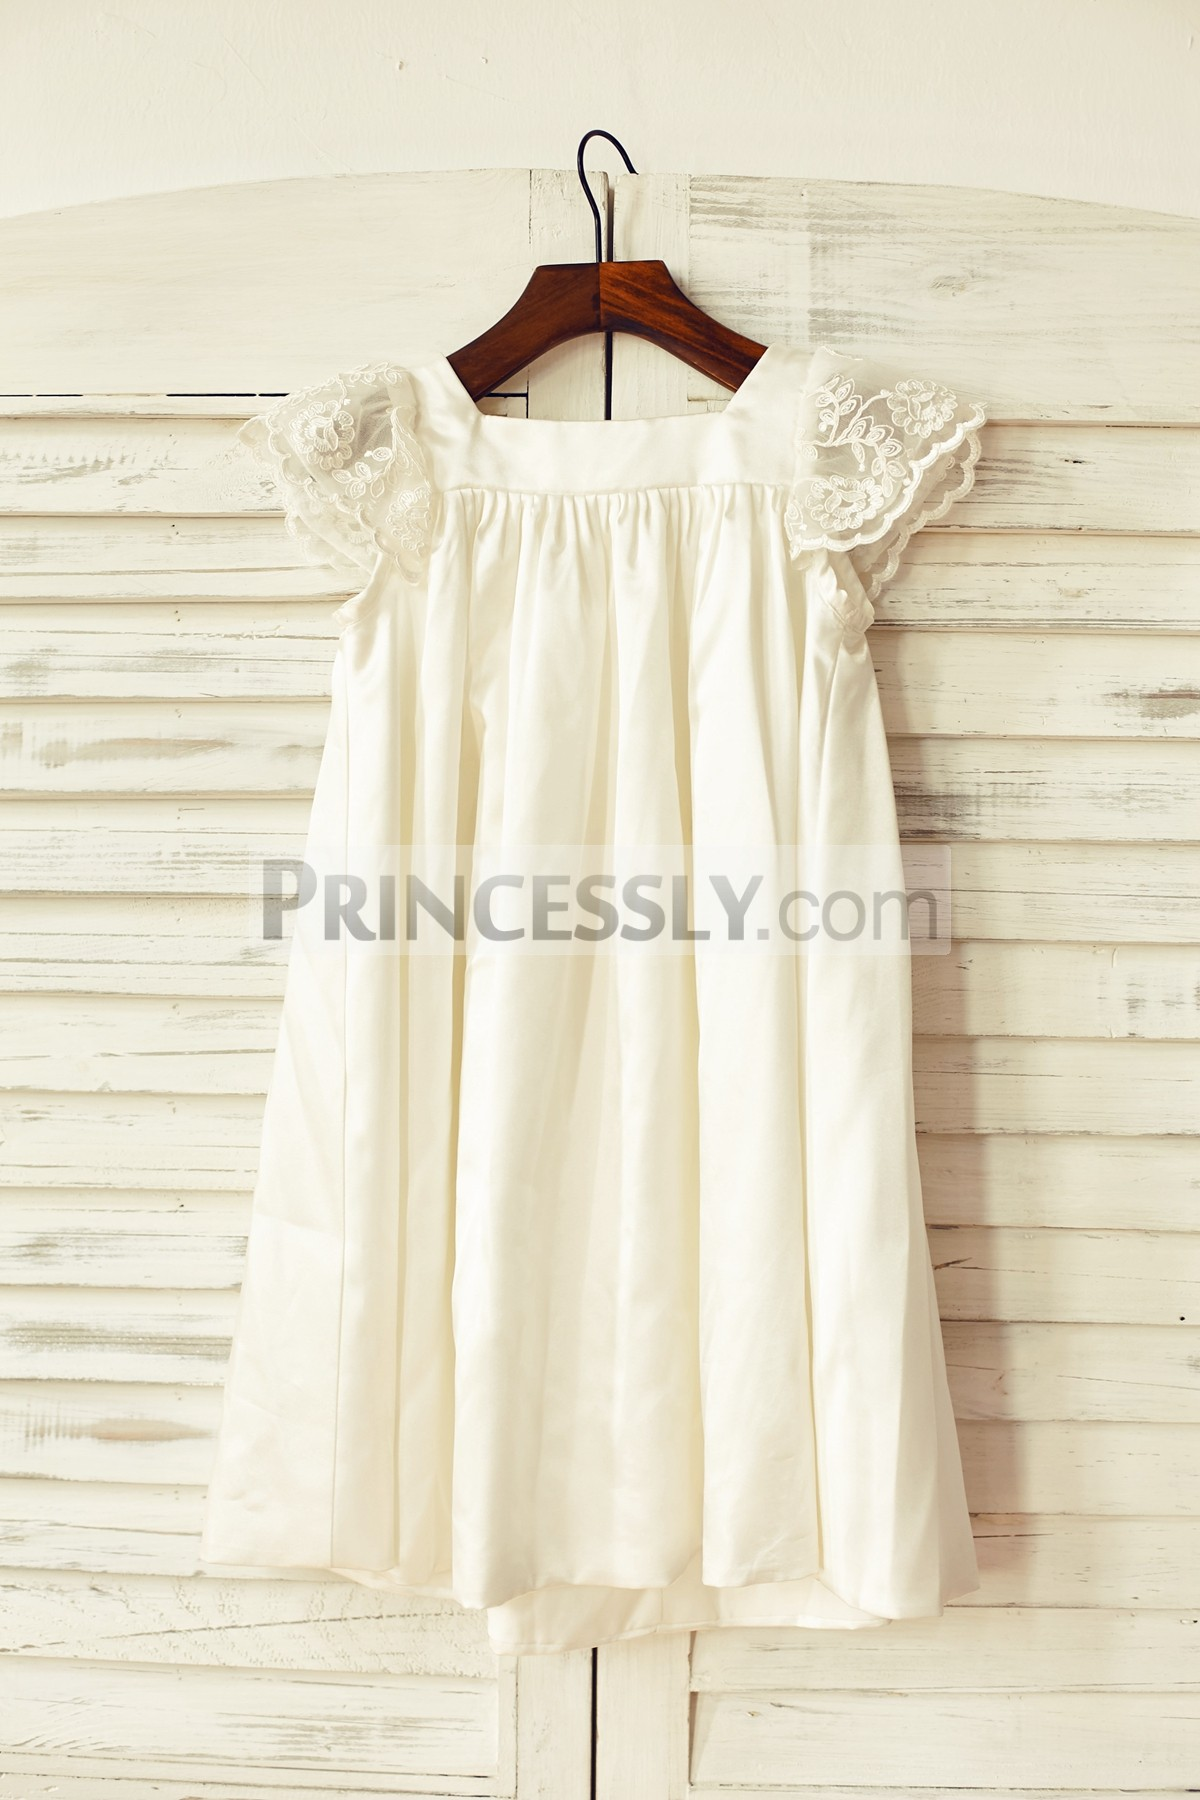 best collection great discount search for latest Babe Sheer Lace Cap Sleeves Ivory Satin Wedding Toddler Girl Dress